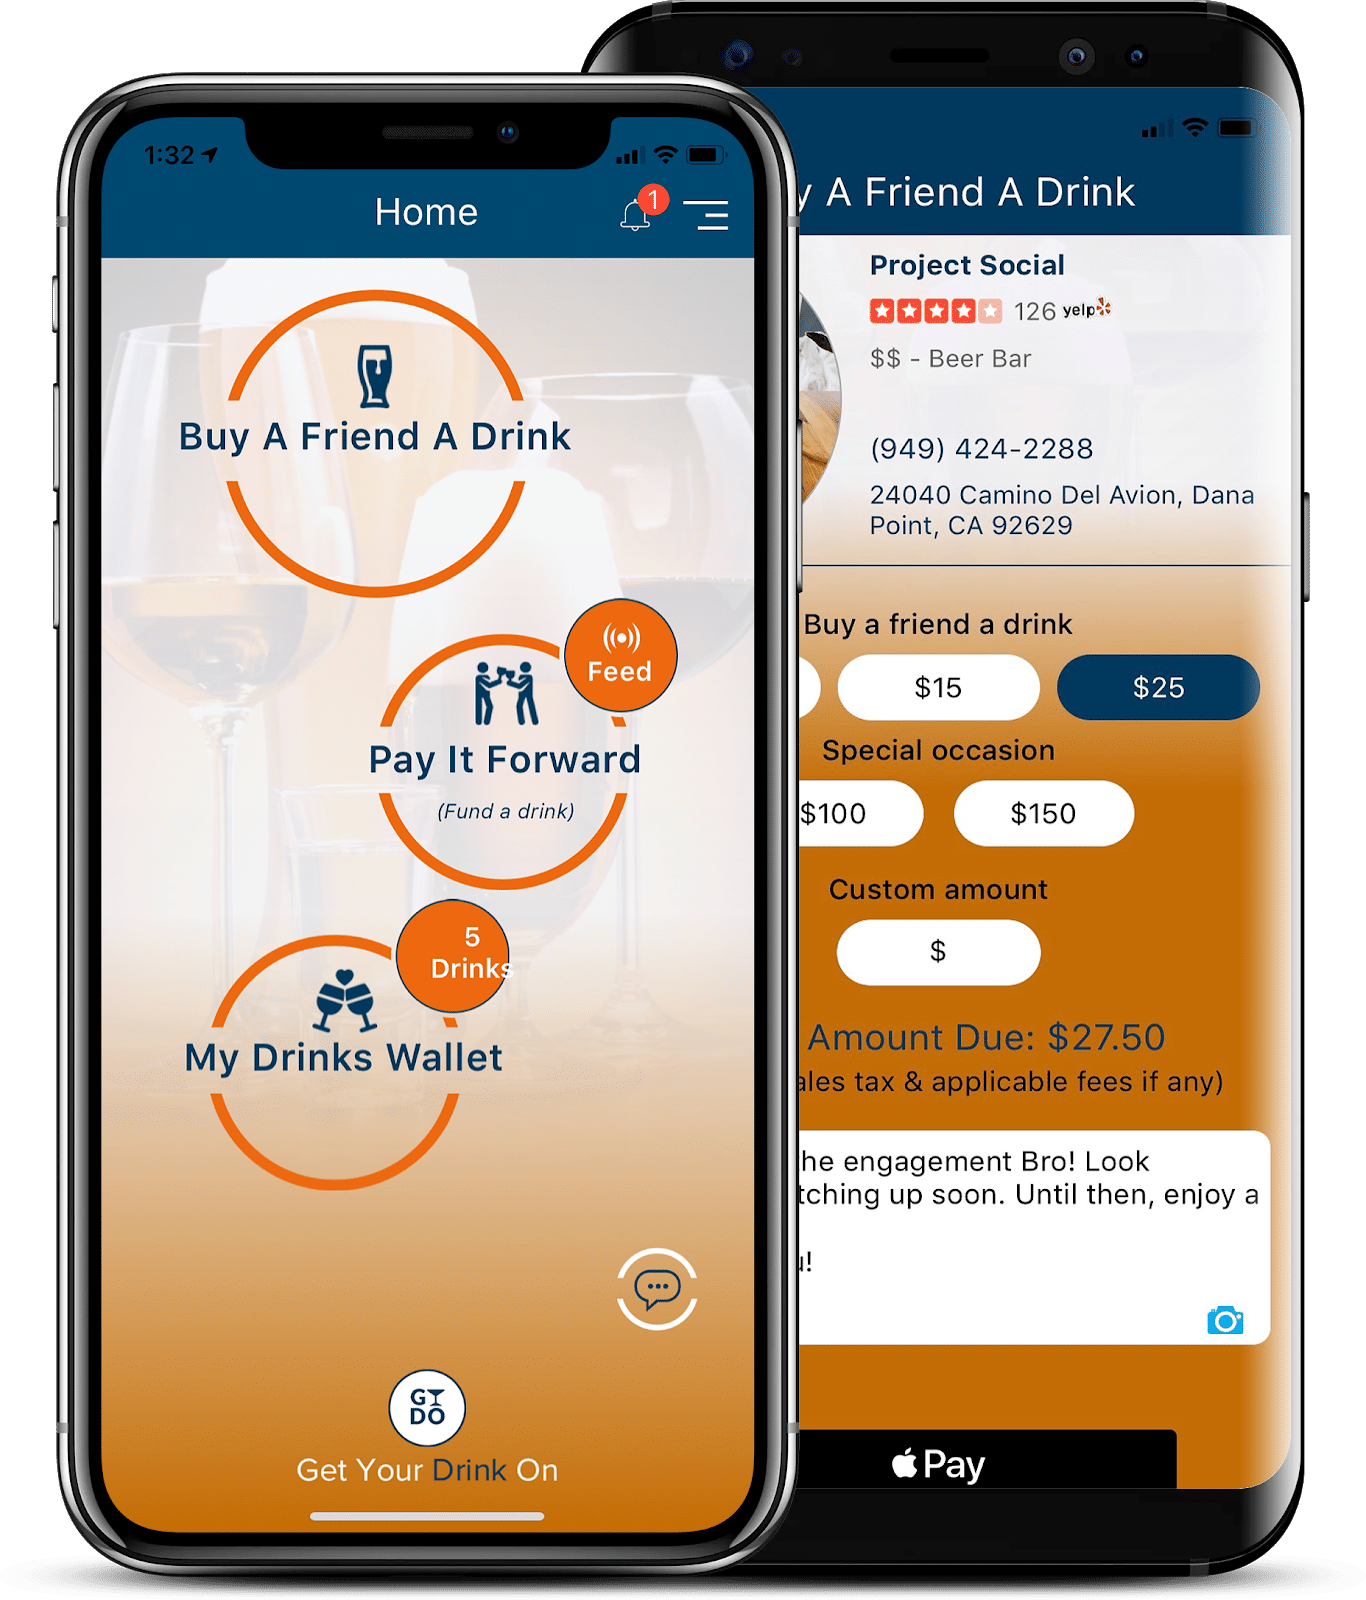 cell phone showing Get Your Drink On app